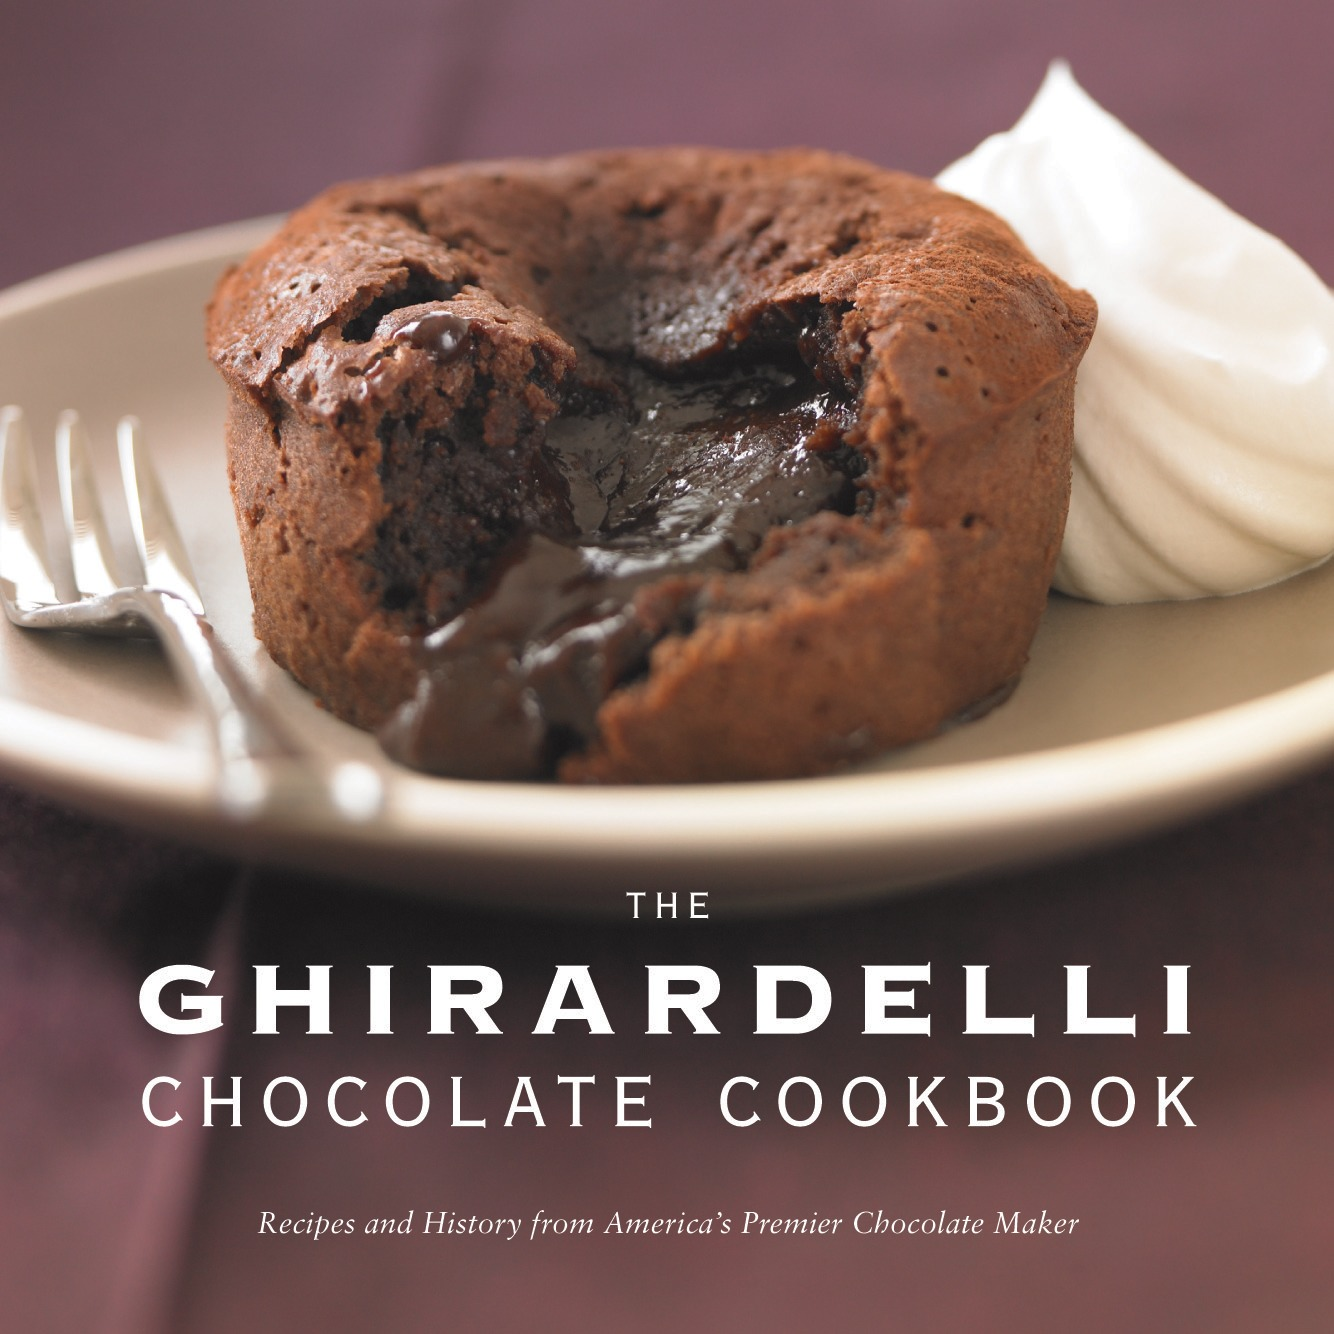 The Ghirardelli Chocolate Cookbook: Recipes and History from America's Premier Chocolate Maker by The Ghirardelli Chocolate Company/ Beisch, Leigh [Hardcover]